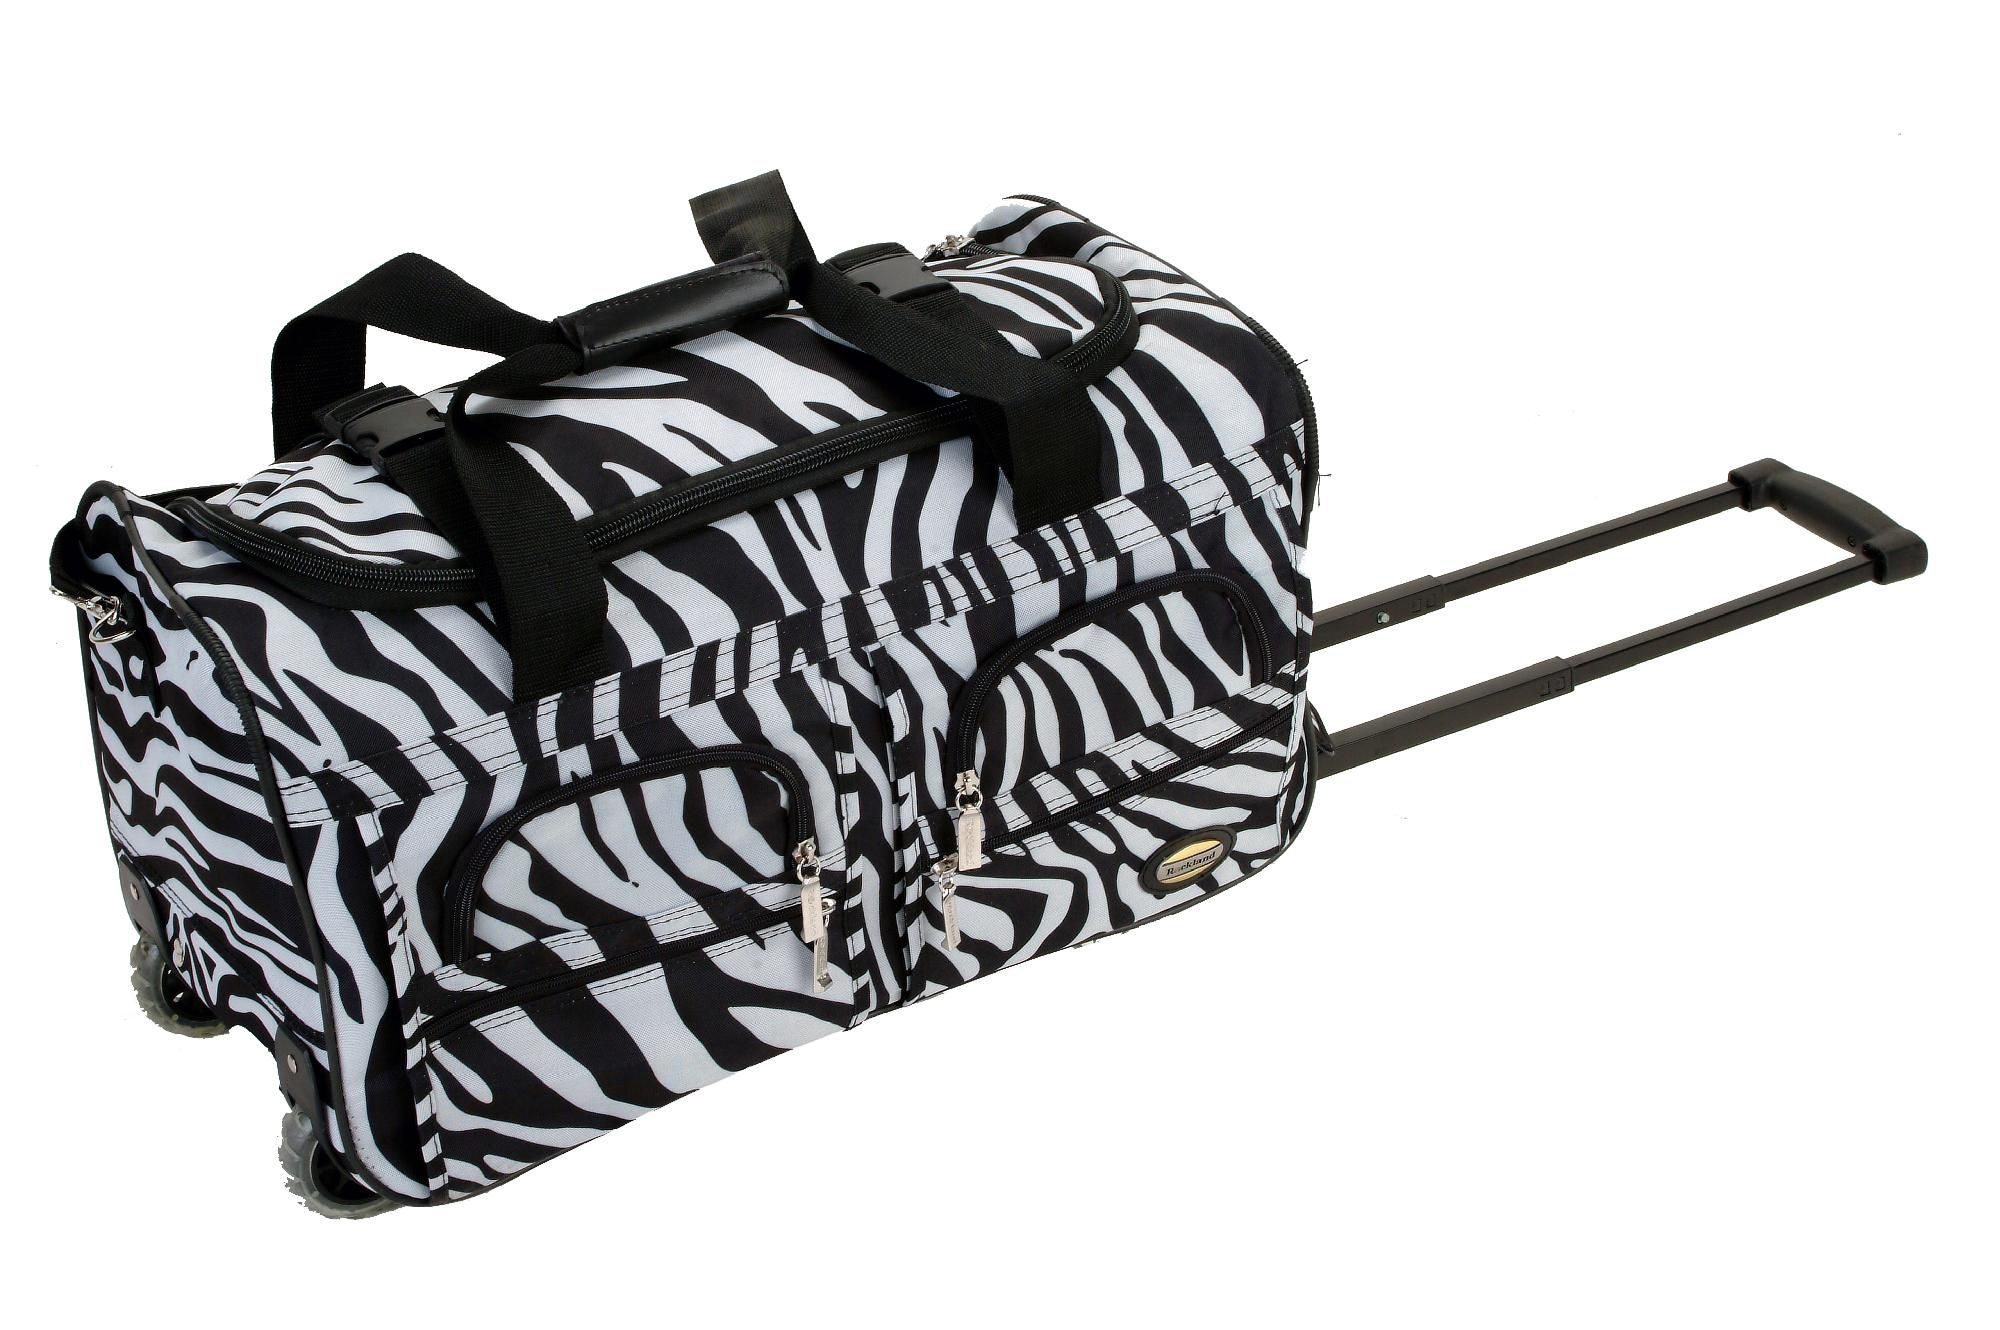 Travel Bag Kmart Rockland Fox Luggage 22 Quot Rolling Duffle Bag Home